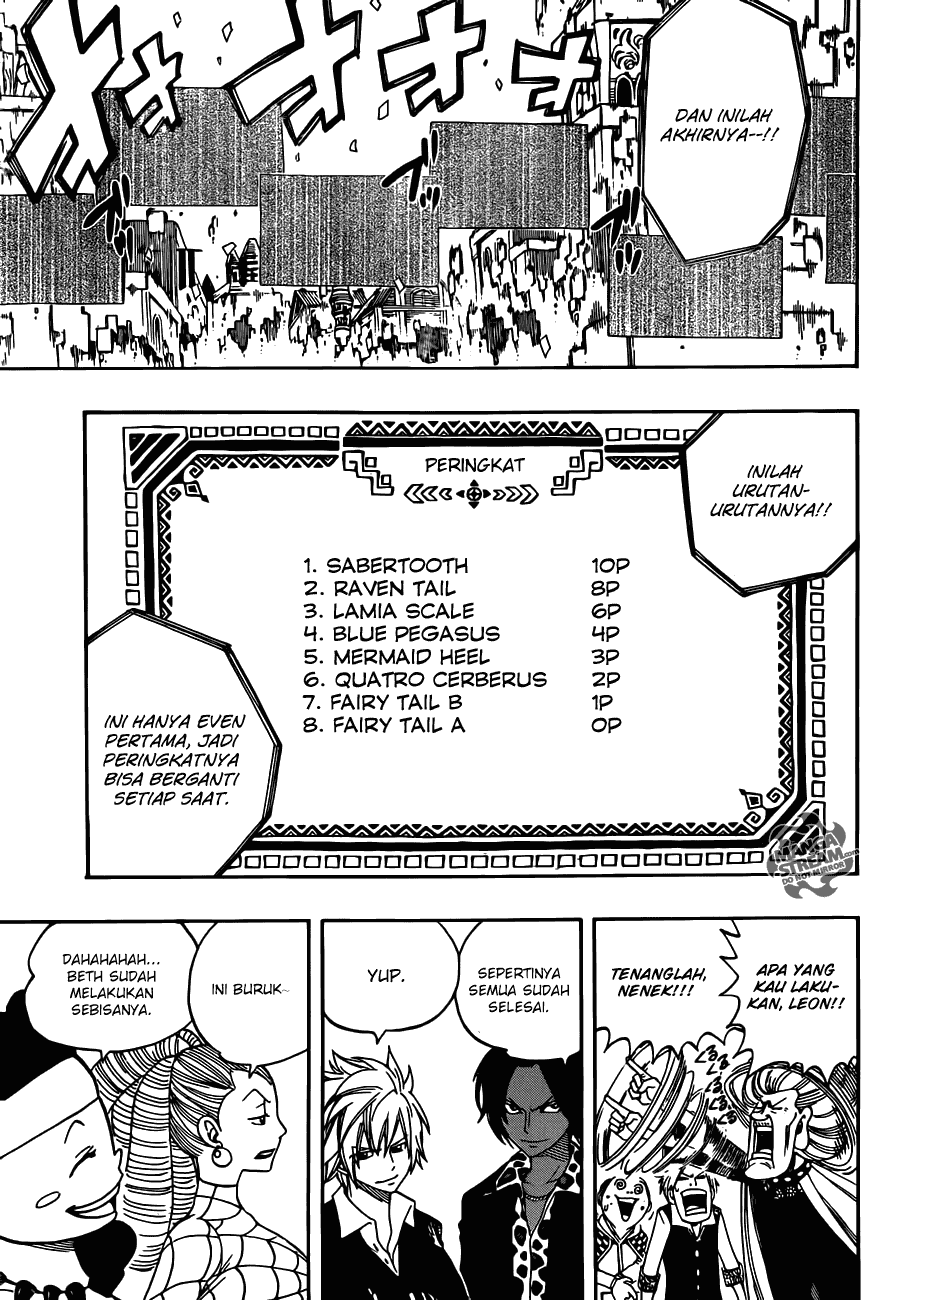 fairy tail indo 270 page 20